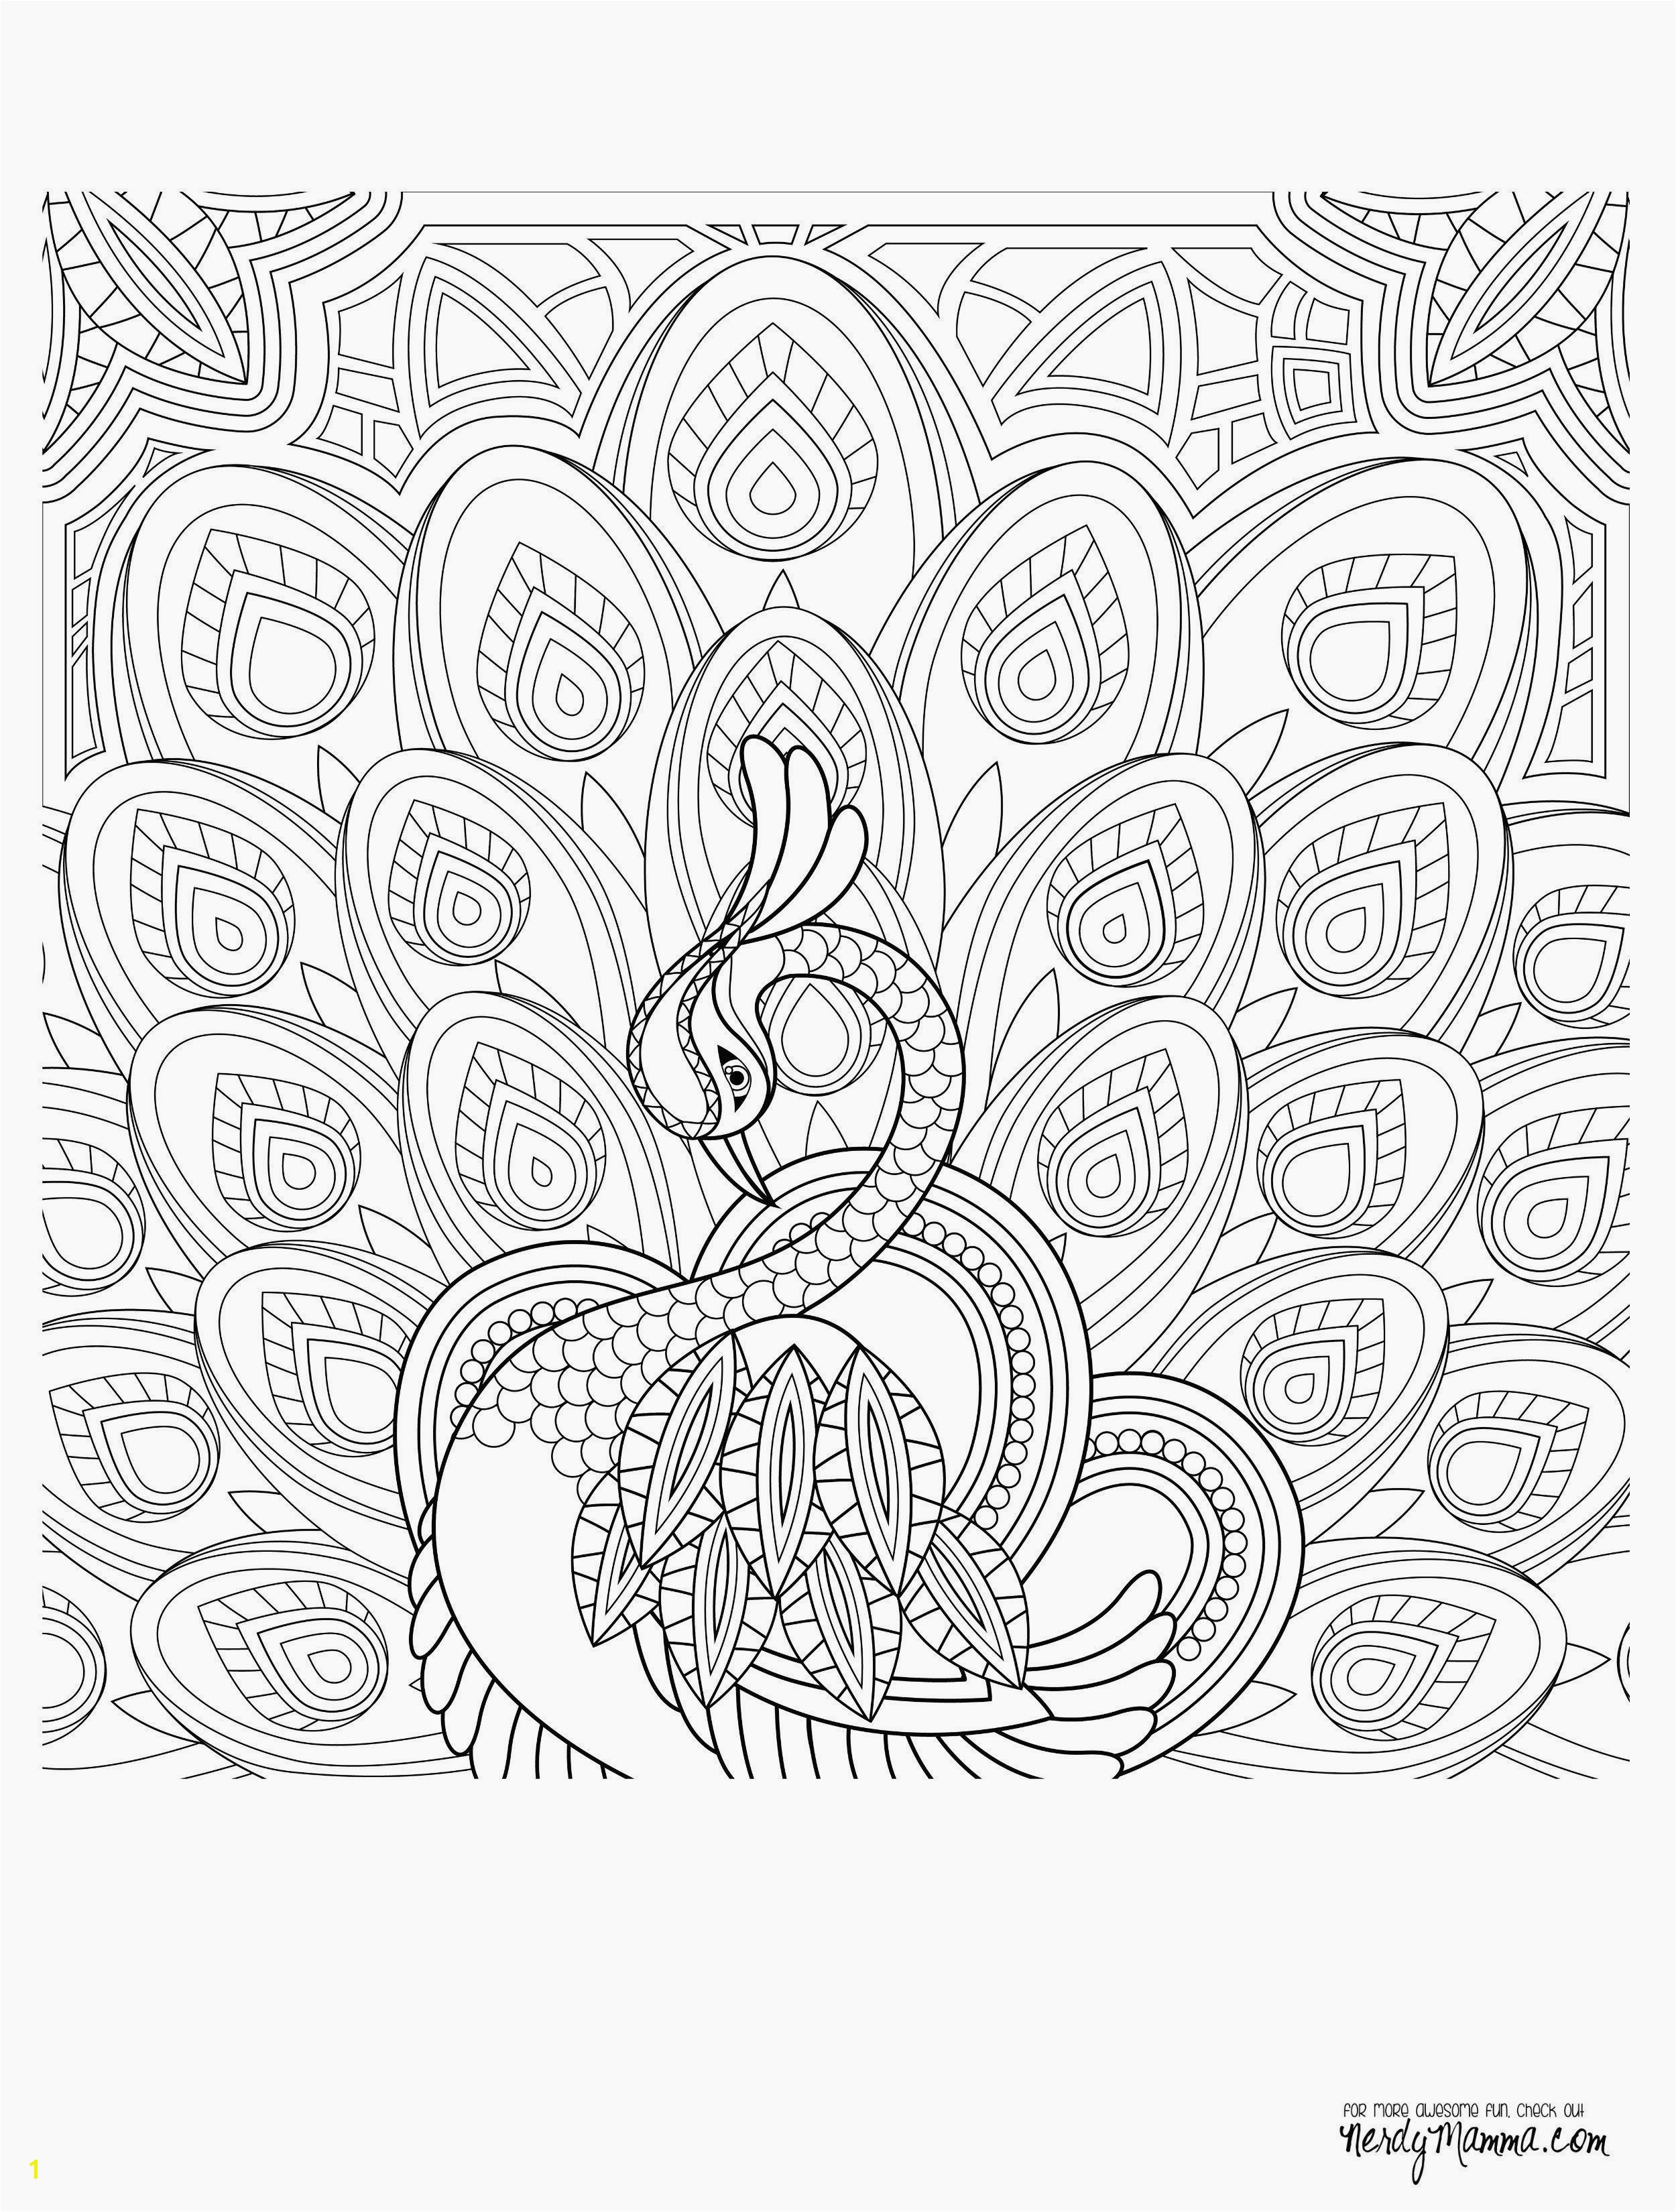 Saving Money Coloring Pages 12 Lovely Saving Money Coloring Pages